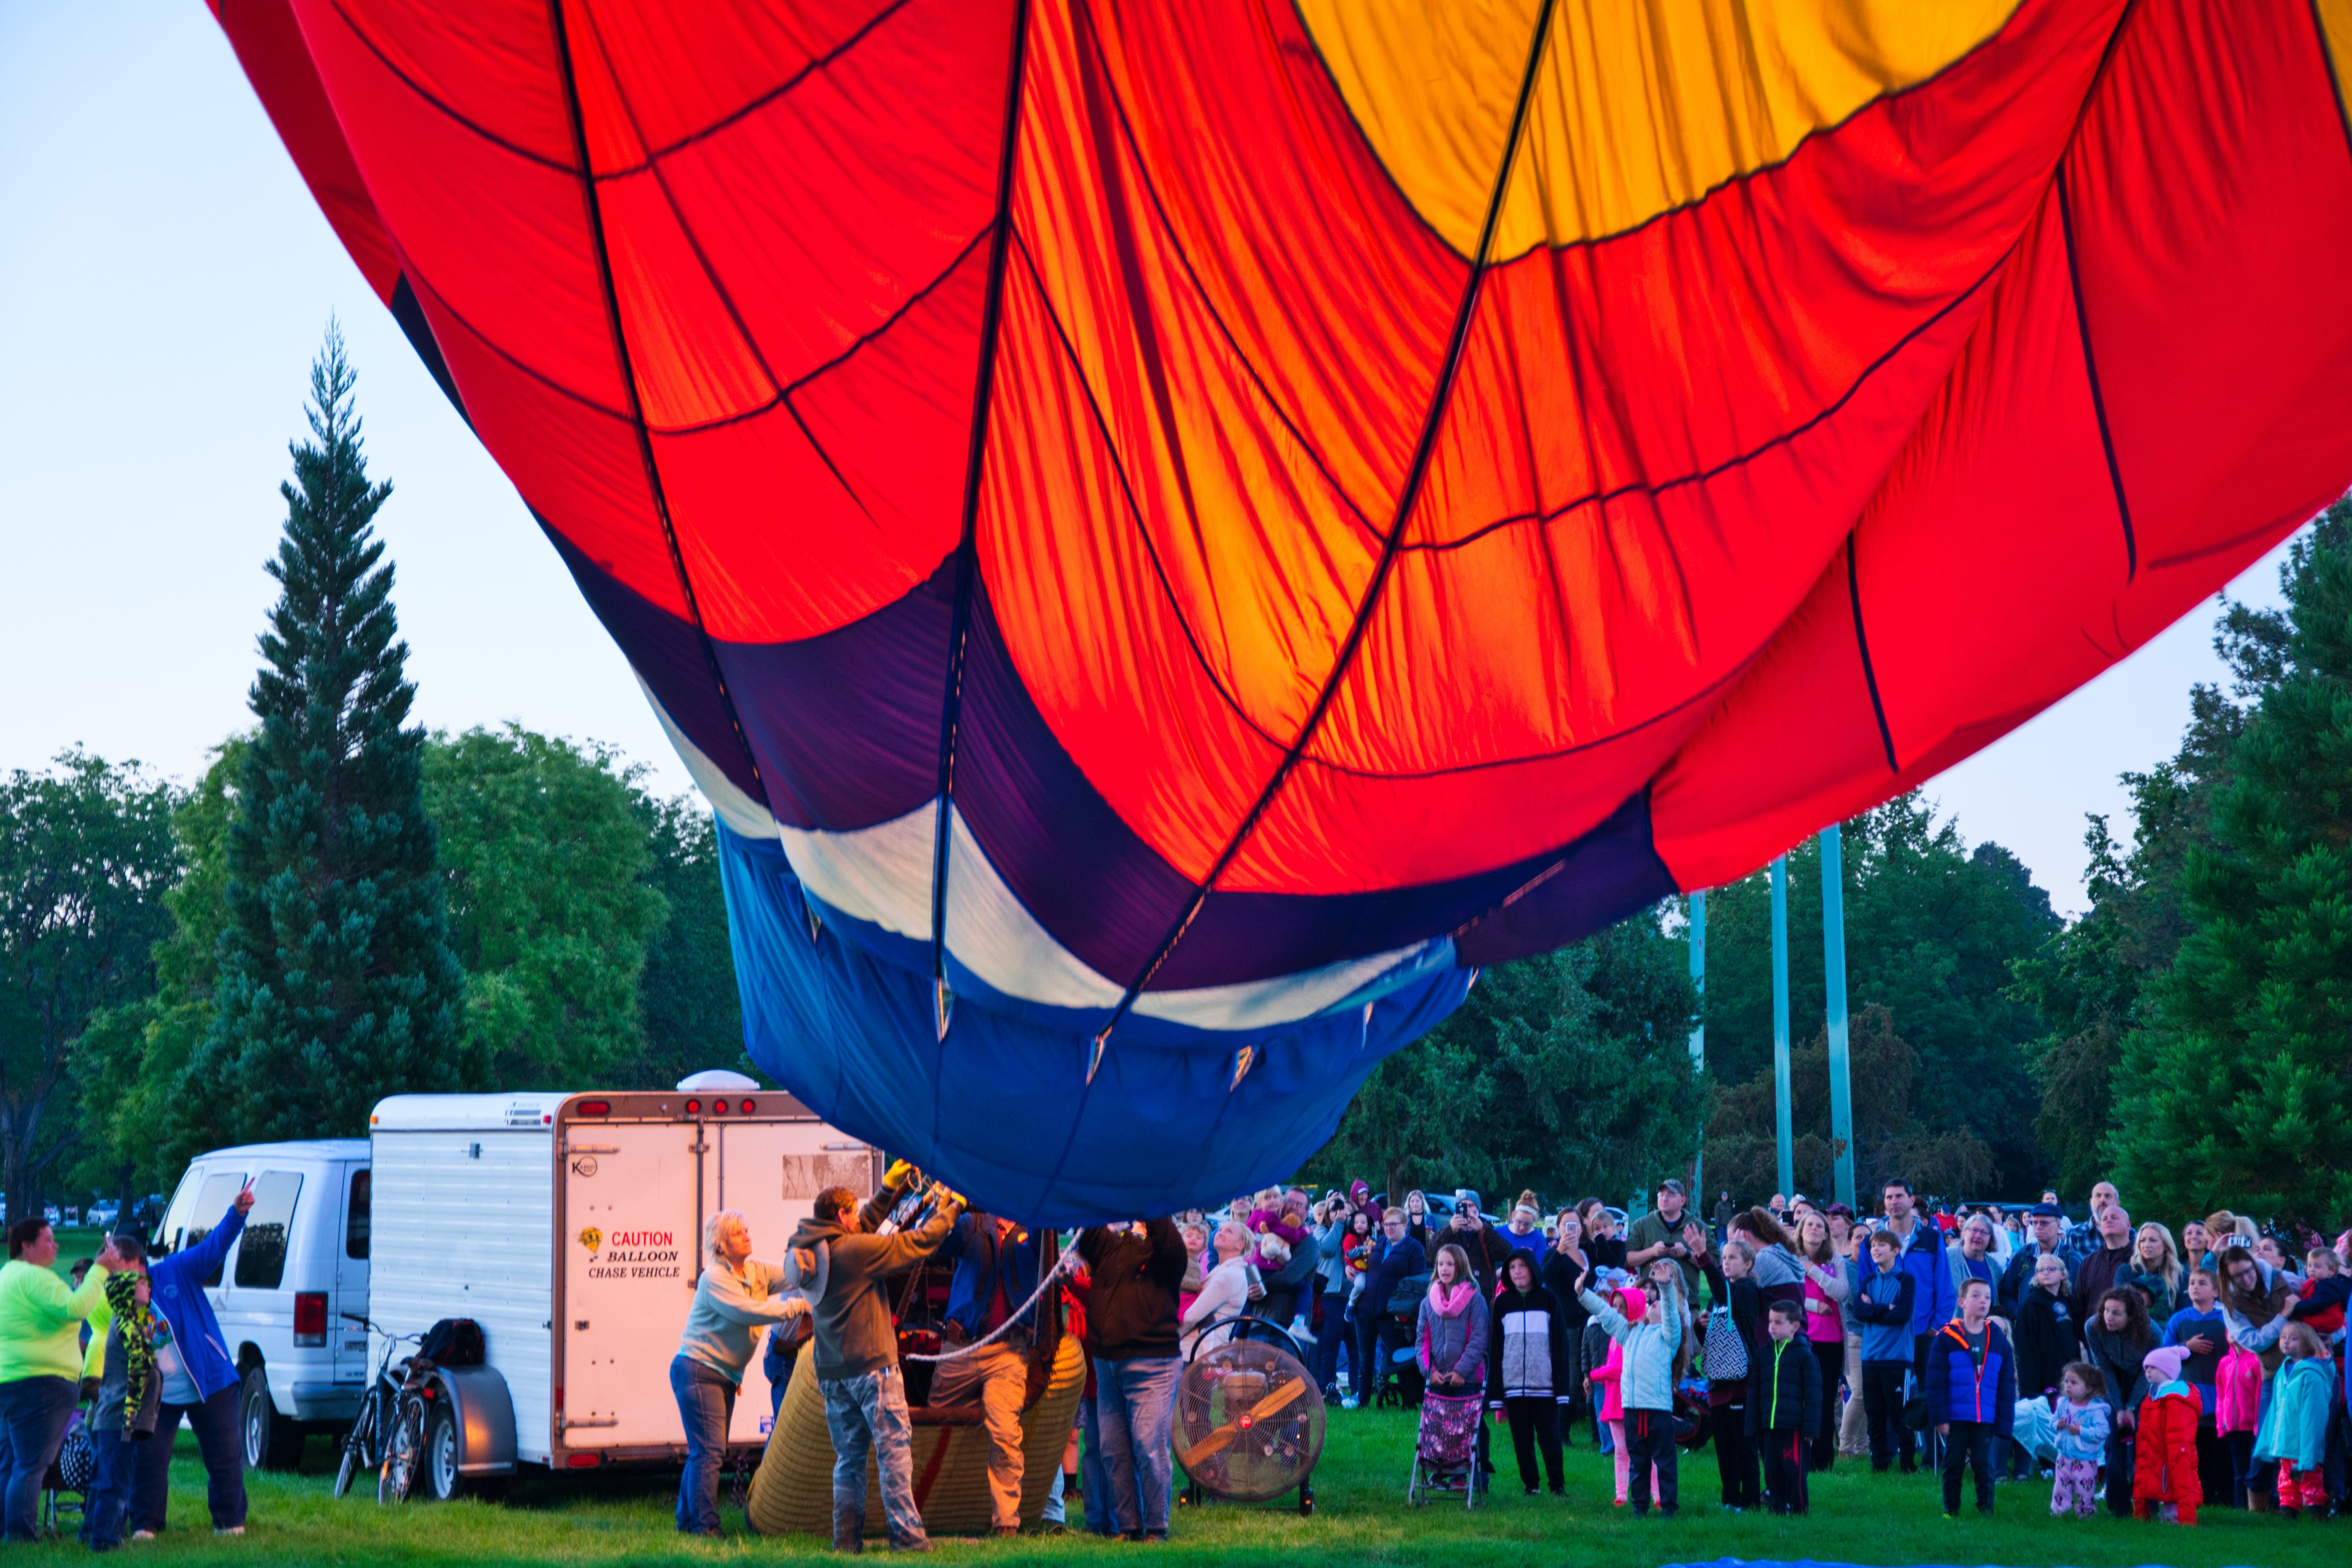 People Positioning Hot Air Balloon